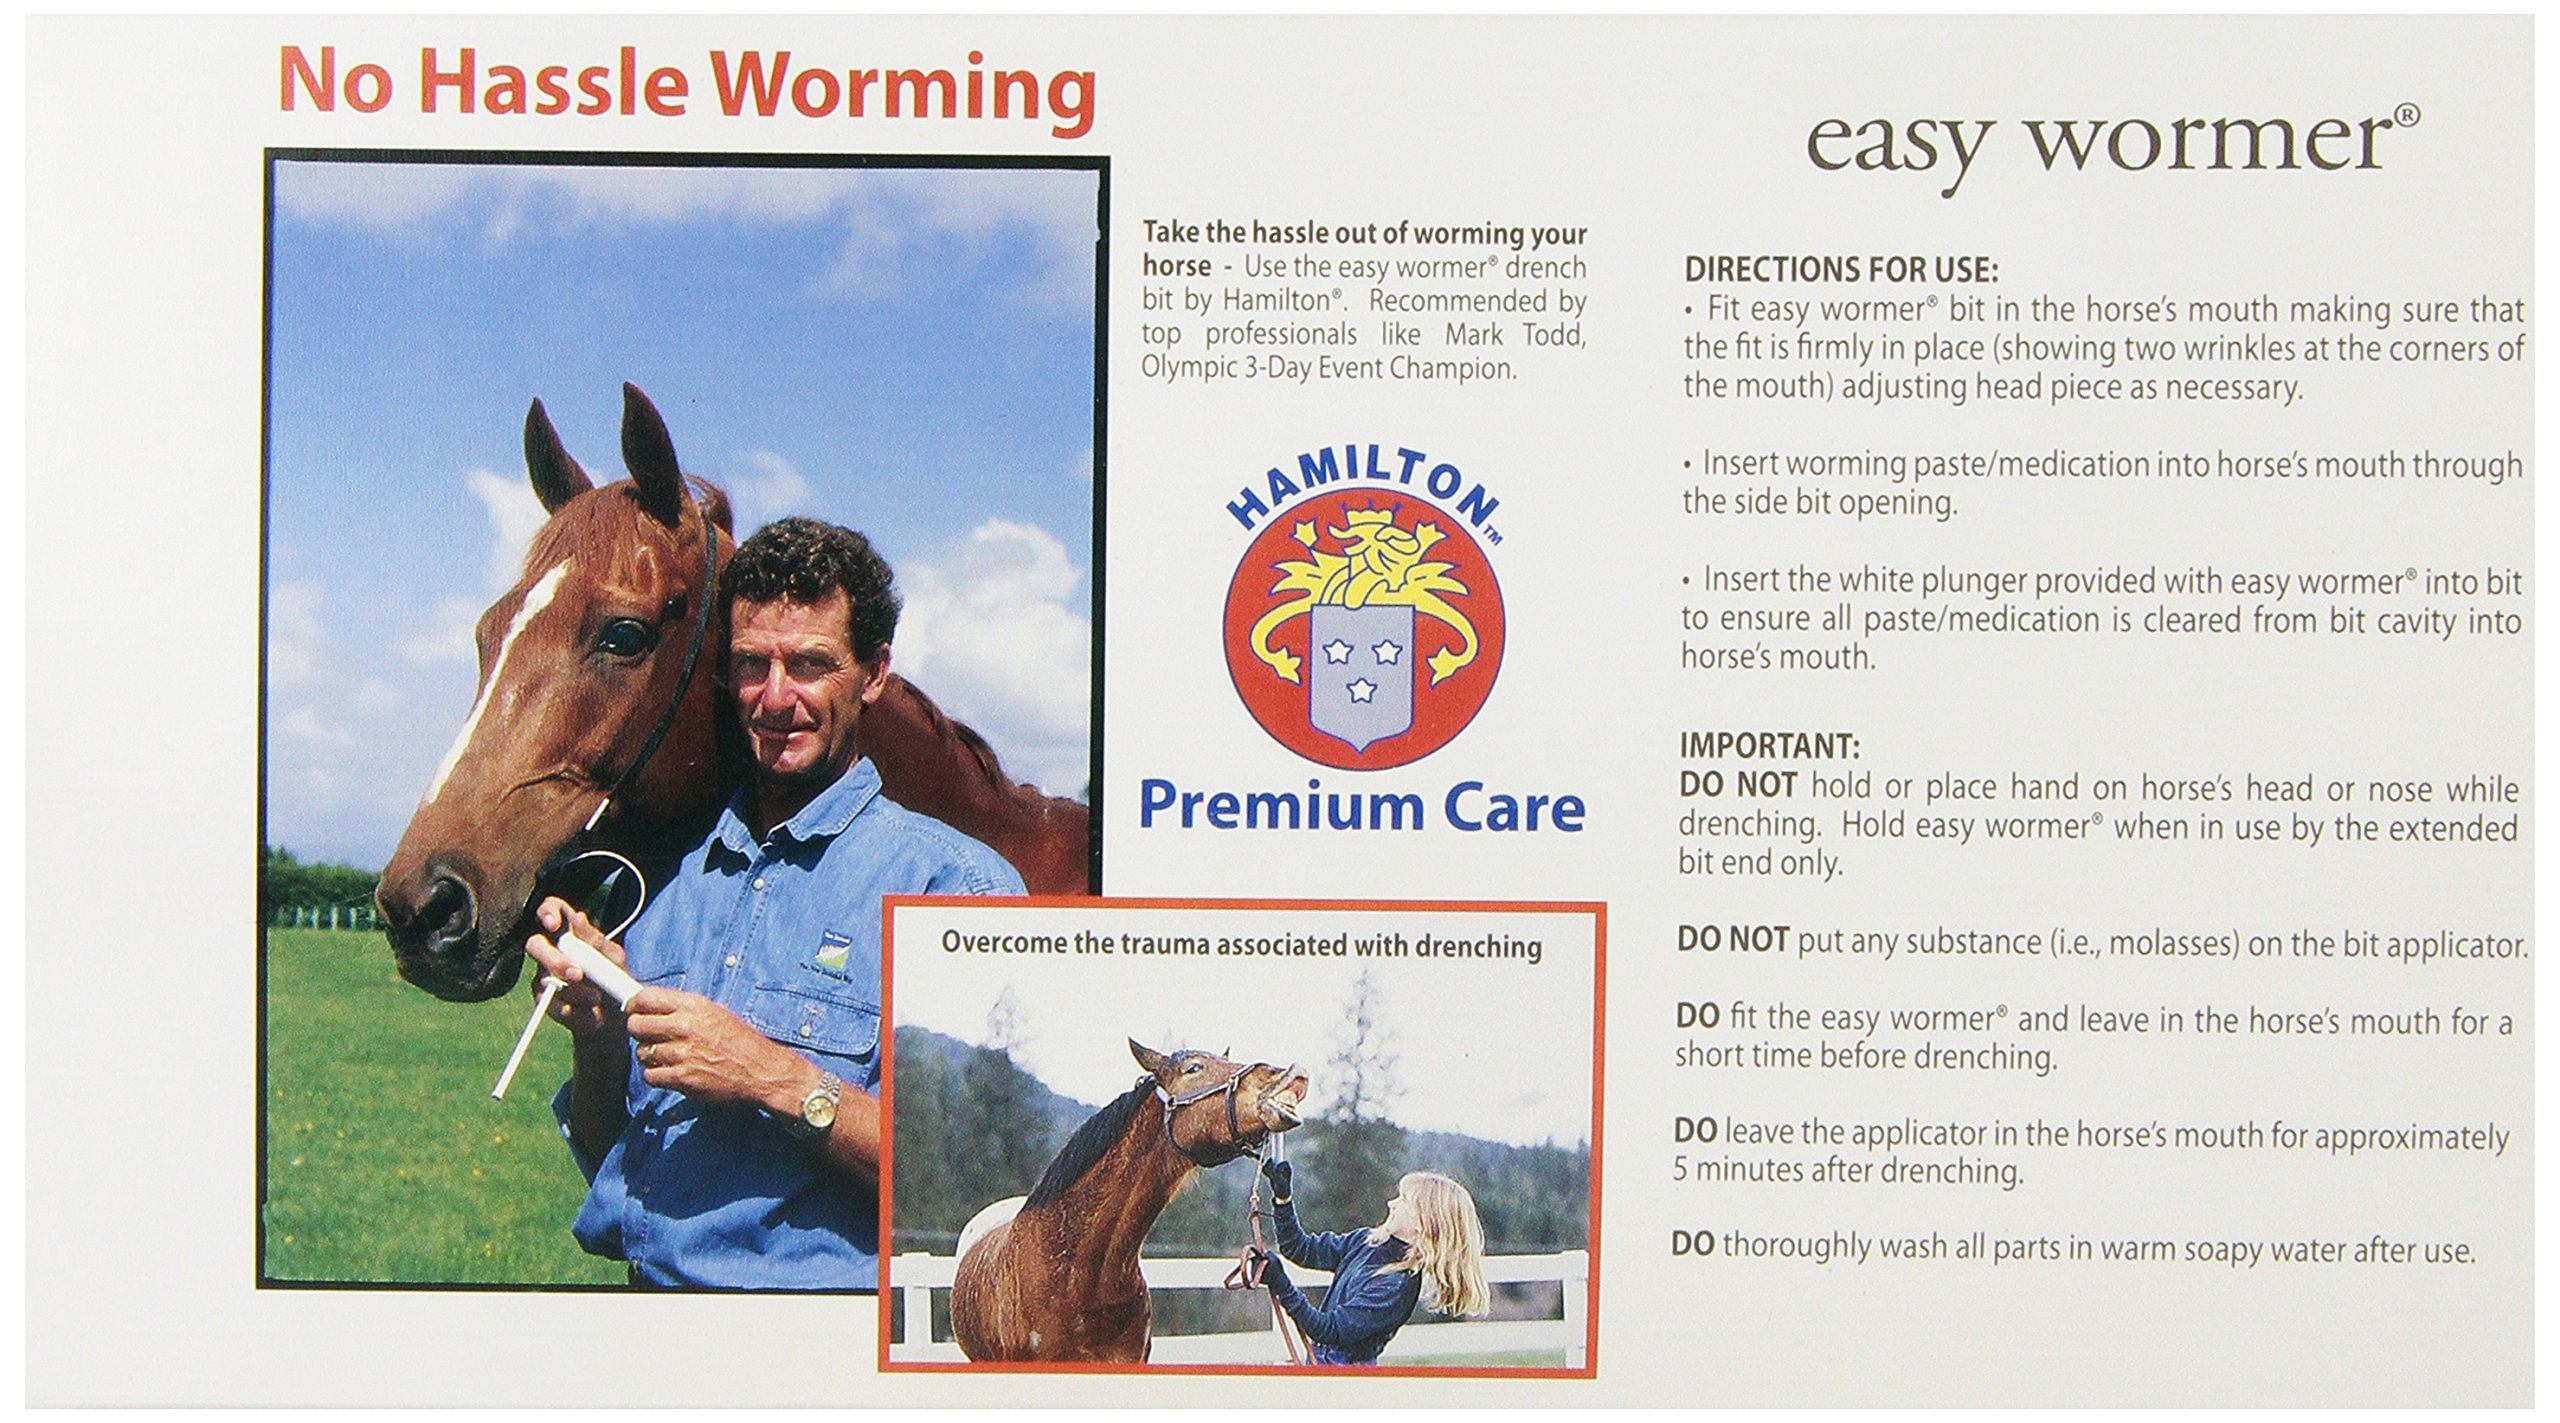 Grooma Easy Wormer Drench Bit